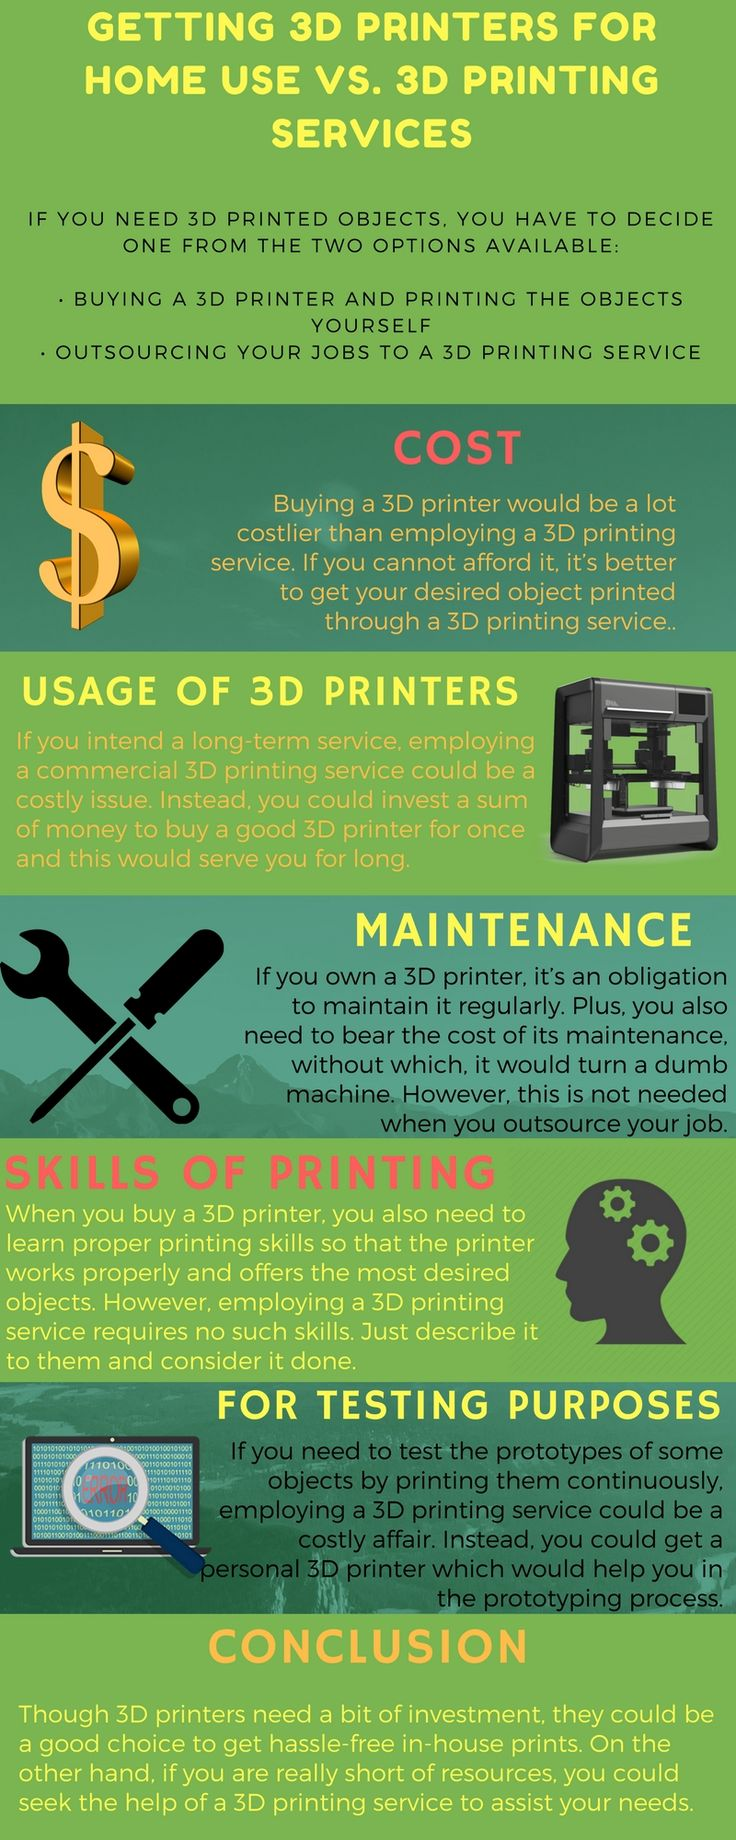 If you need 3D printed objects, you have to decide one from the two options available:  •Buying a 3D printer and printing the objects yourself  •Outsourcing your jobs to a 3D printing service